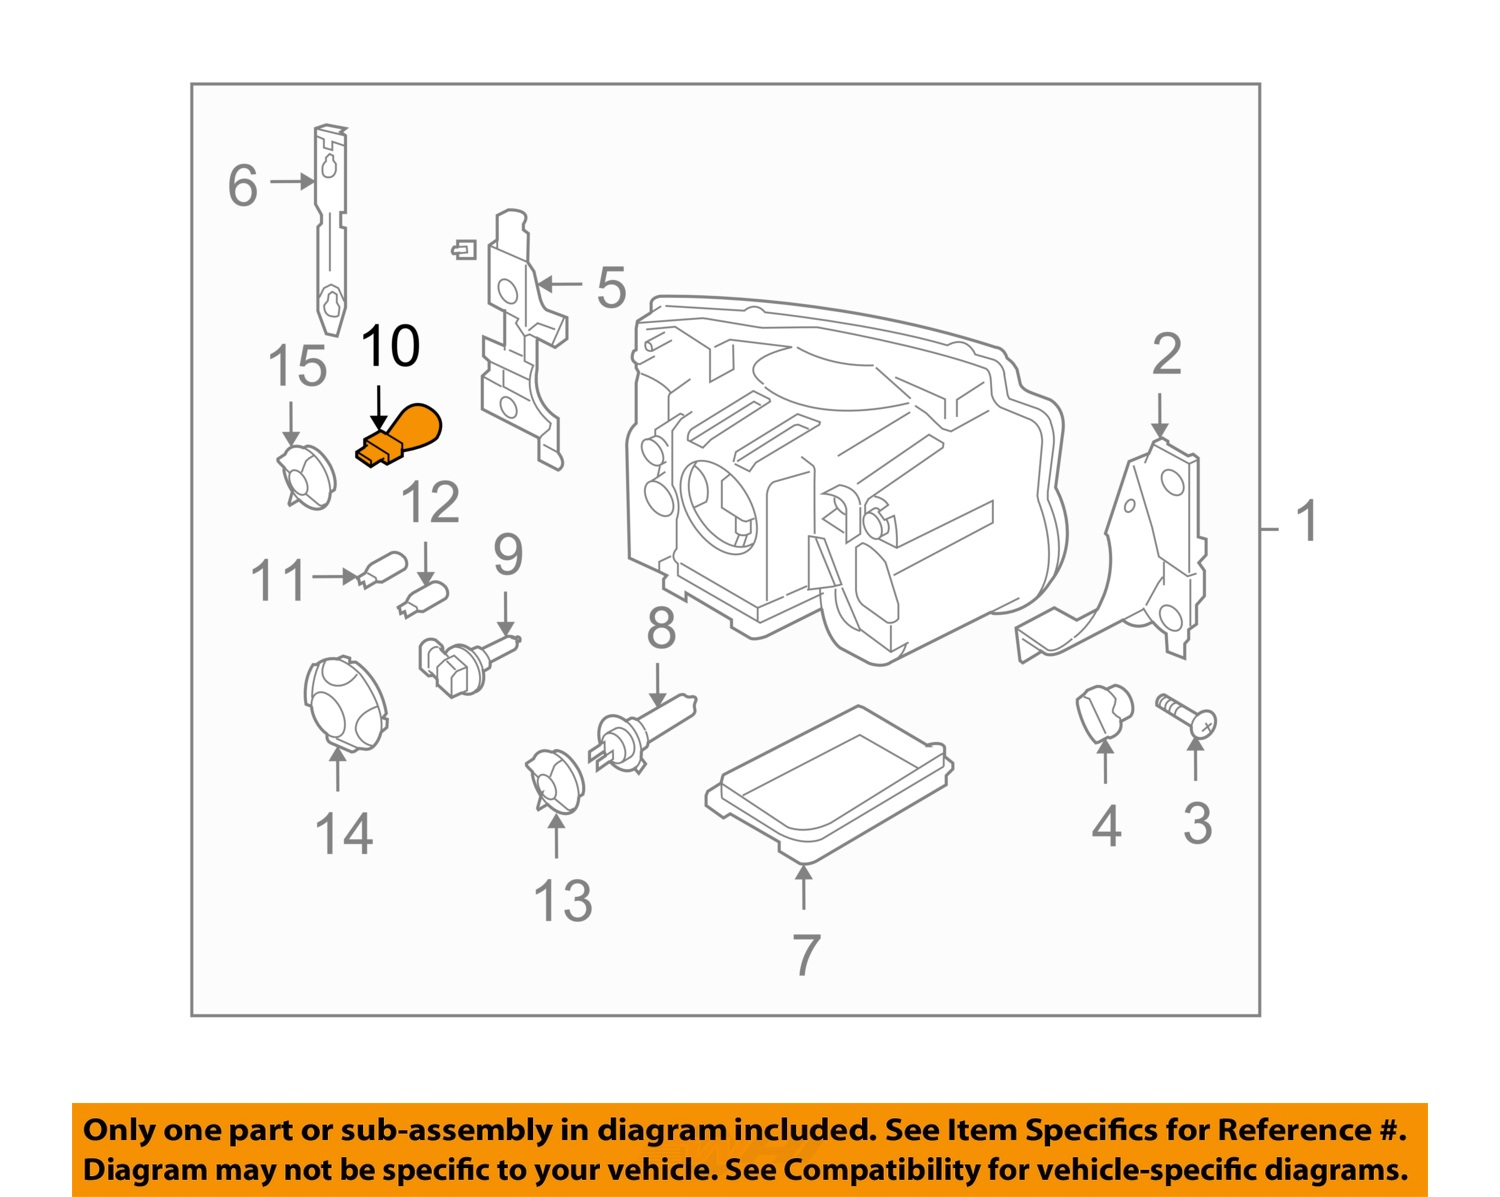 2006 Land Rover Lr3 Engine Diagram Car Diagrams Discovery Source Fuse Box Wiring